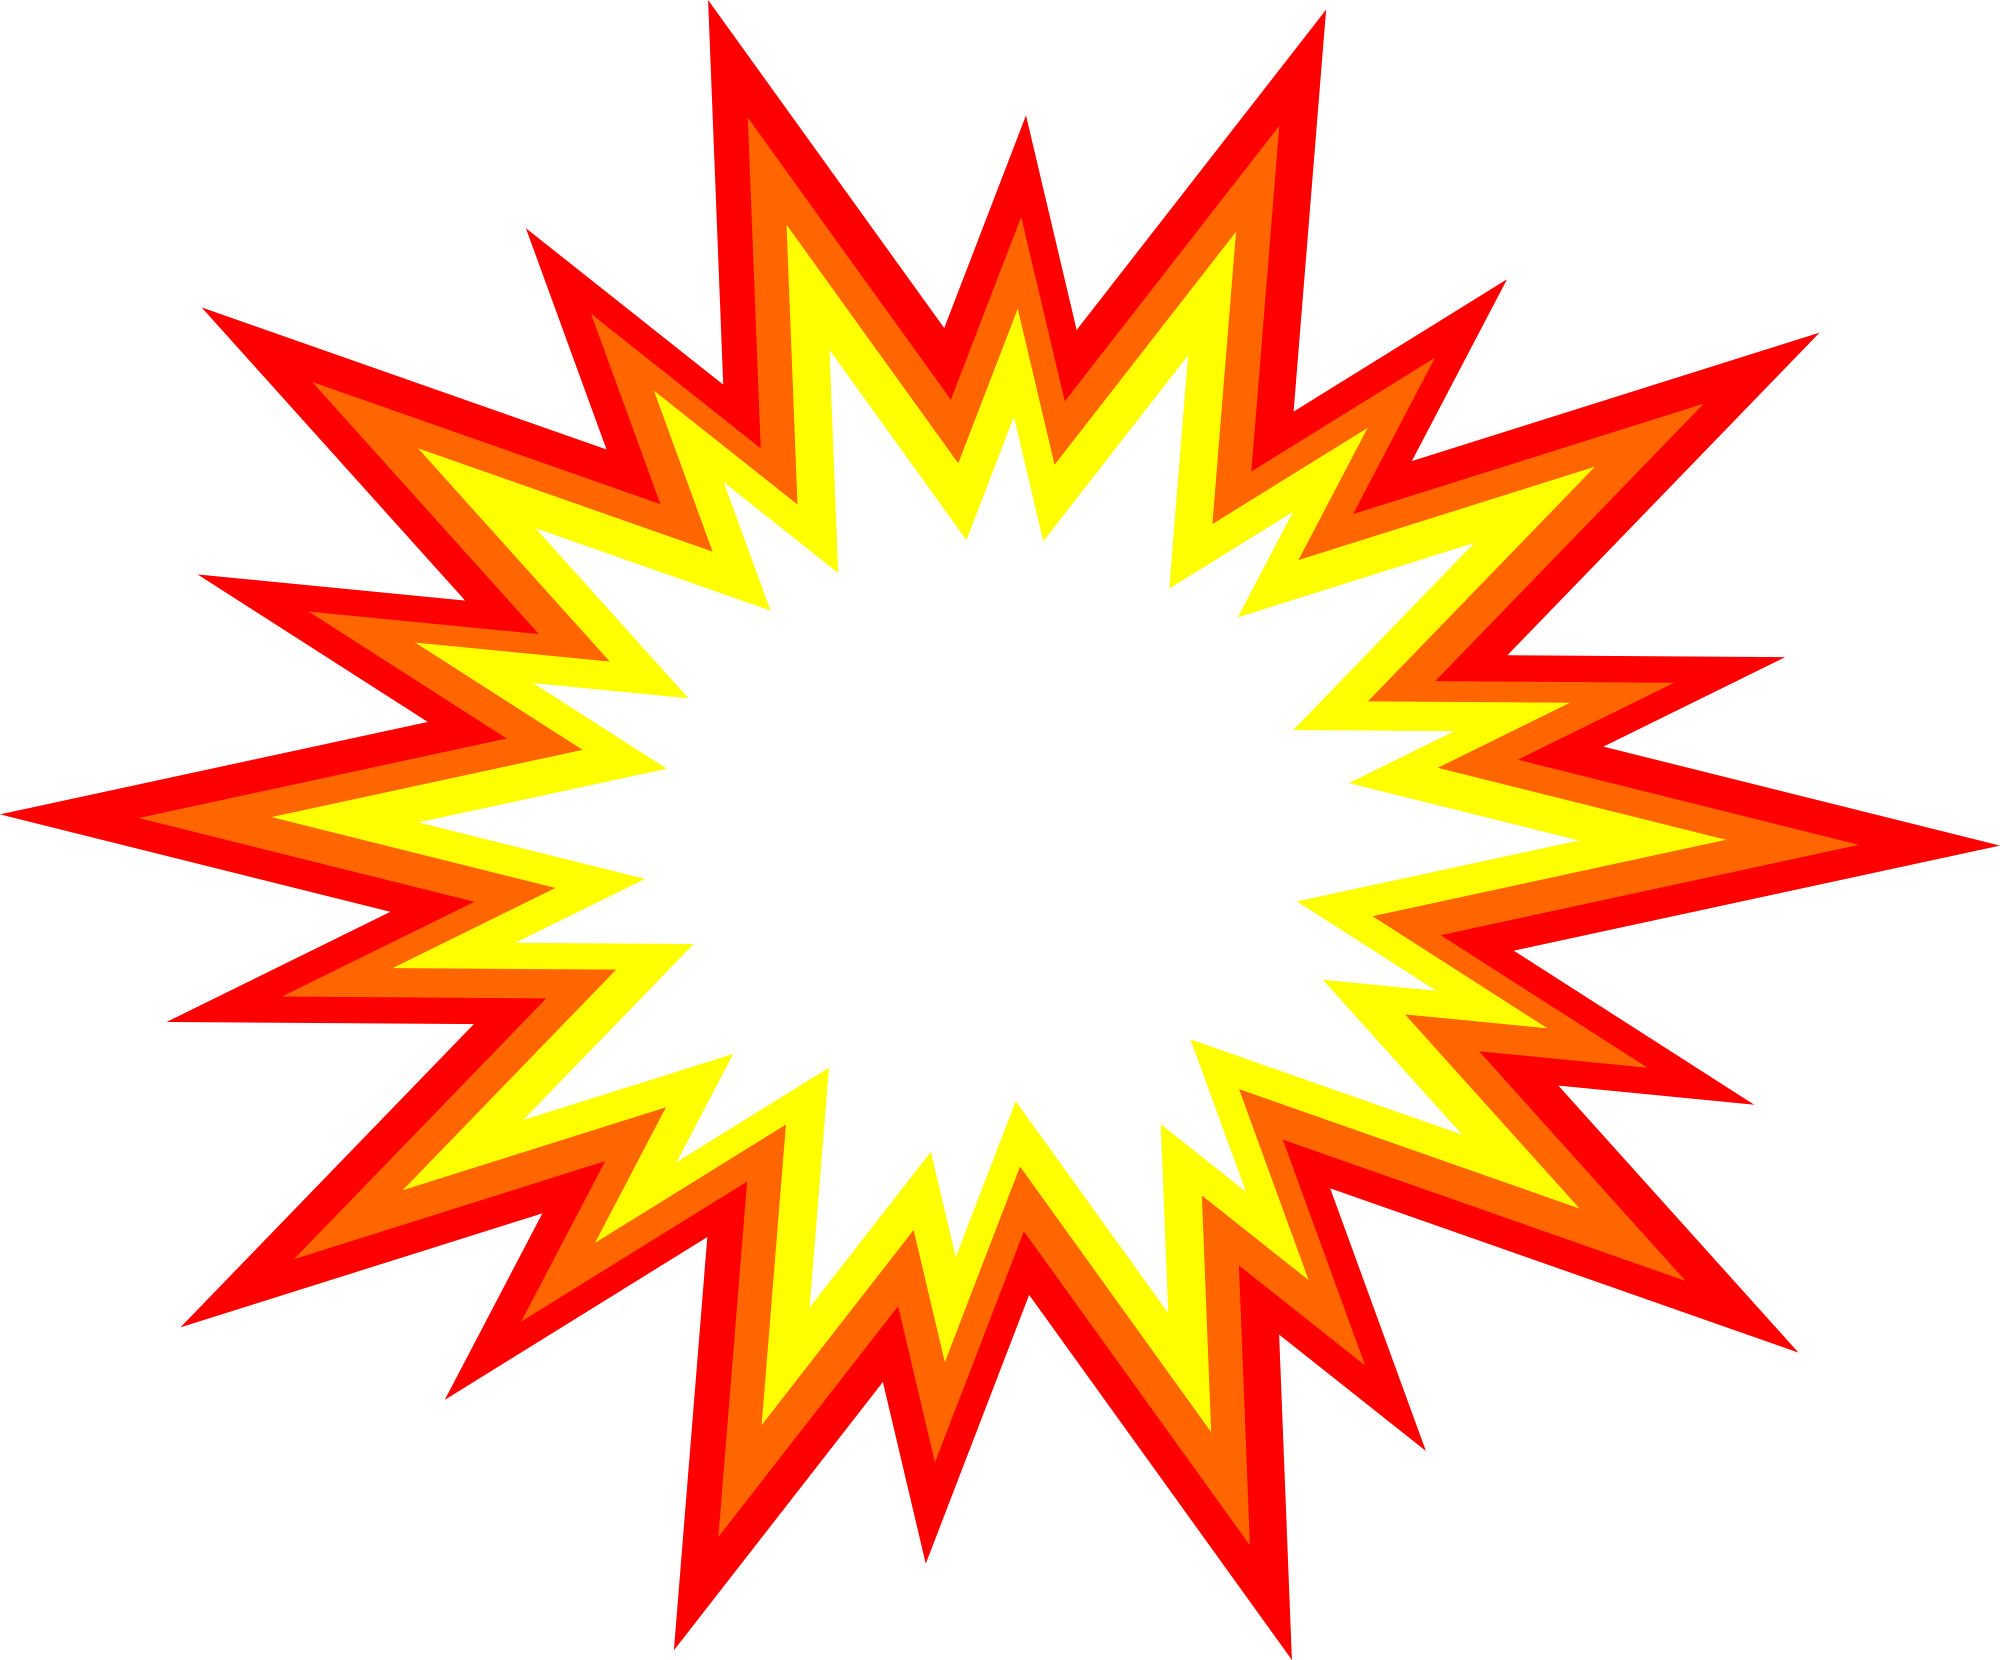 starburst explosion comic. Vector images png